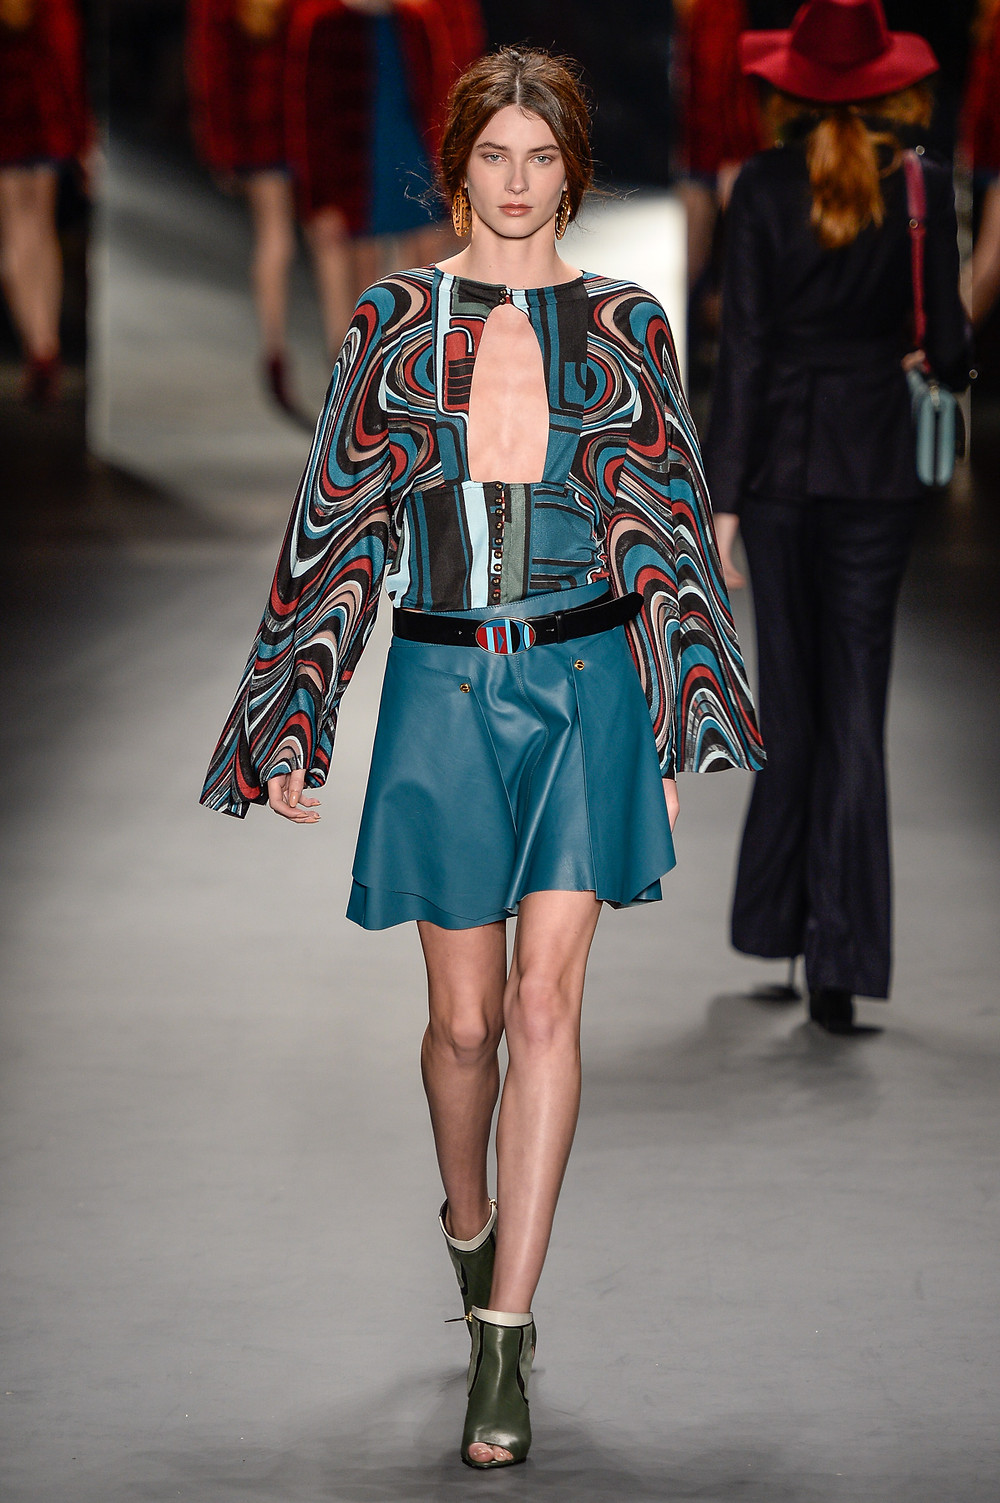 lilly-sarti-spfw-inverno2015-04.jpg